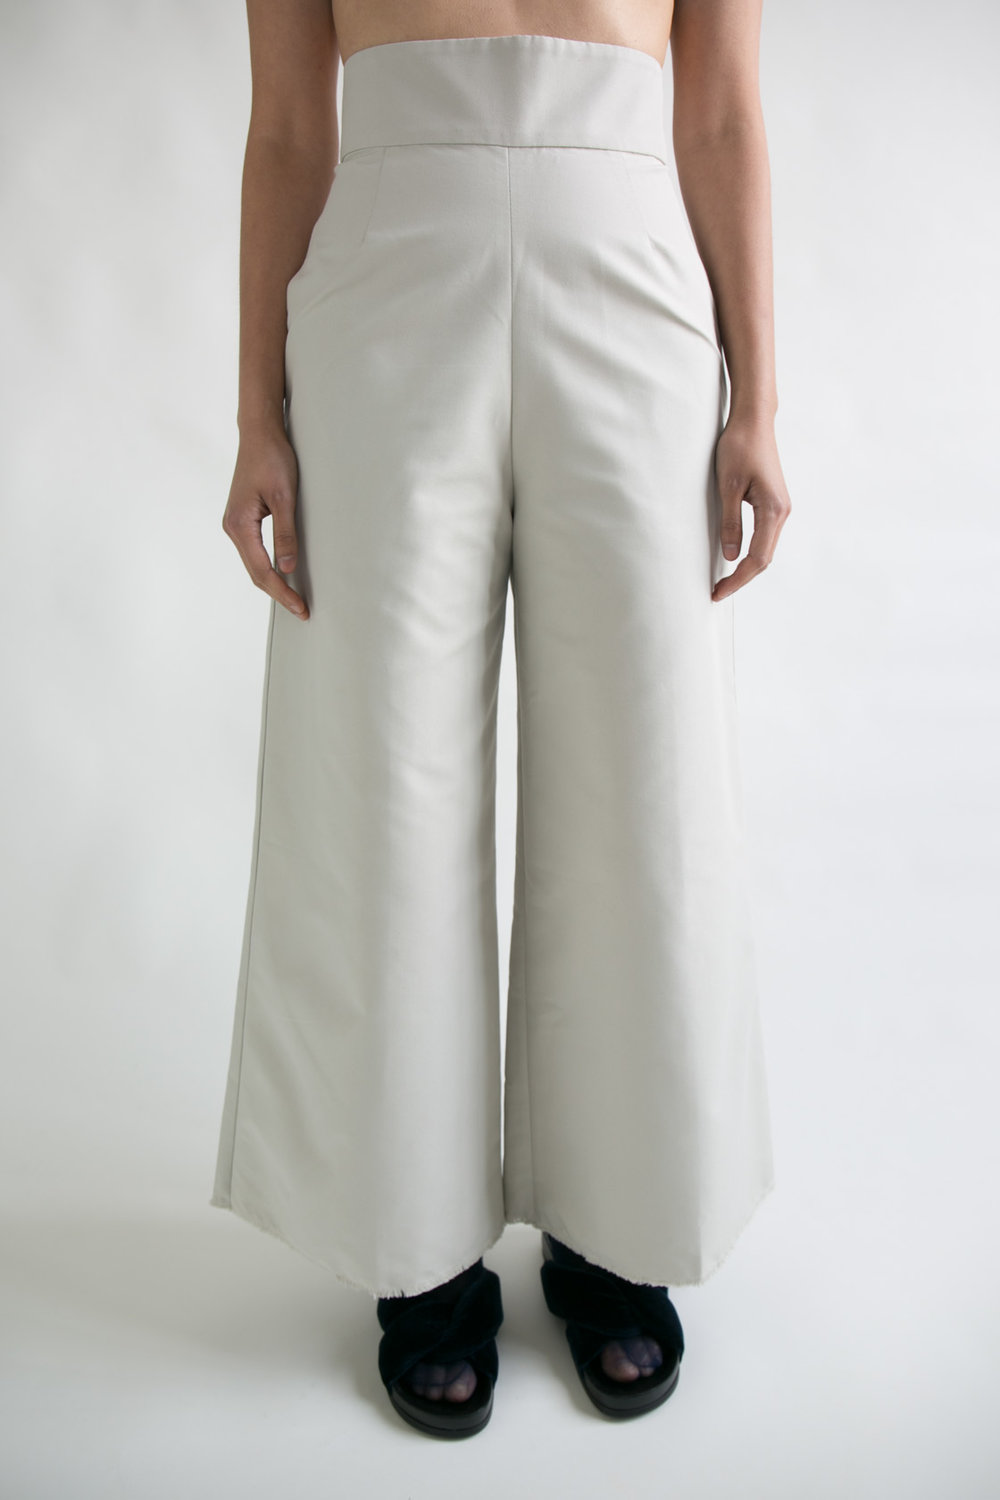 Nica Pant Ivory  XS S M  $345